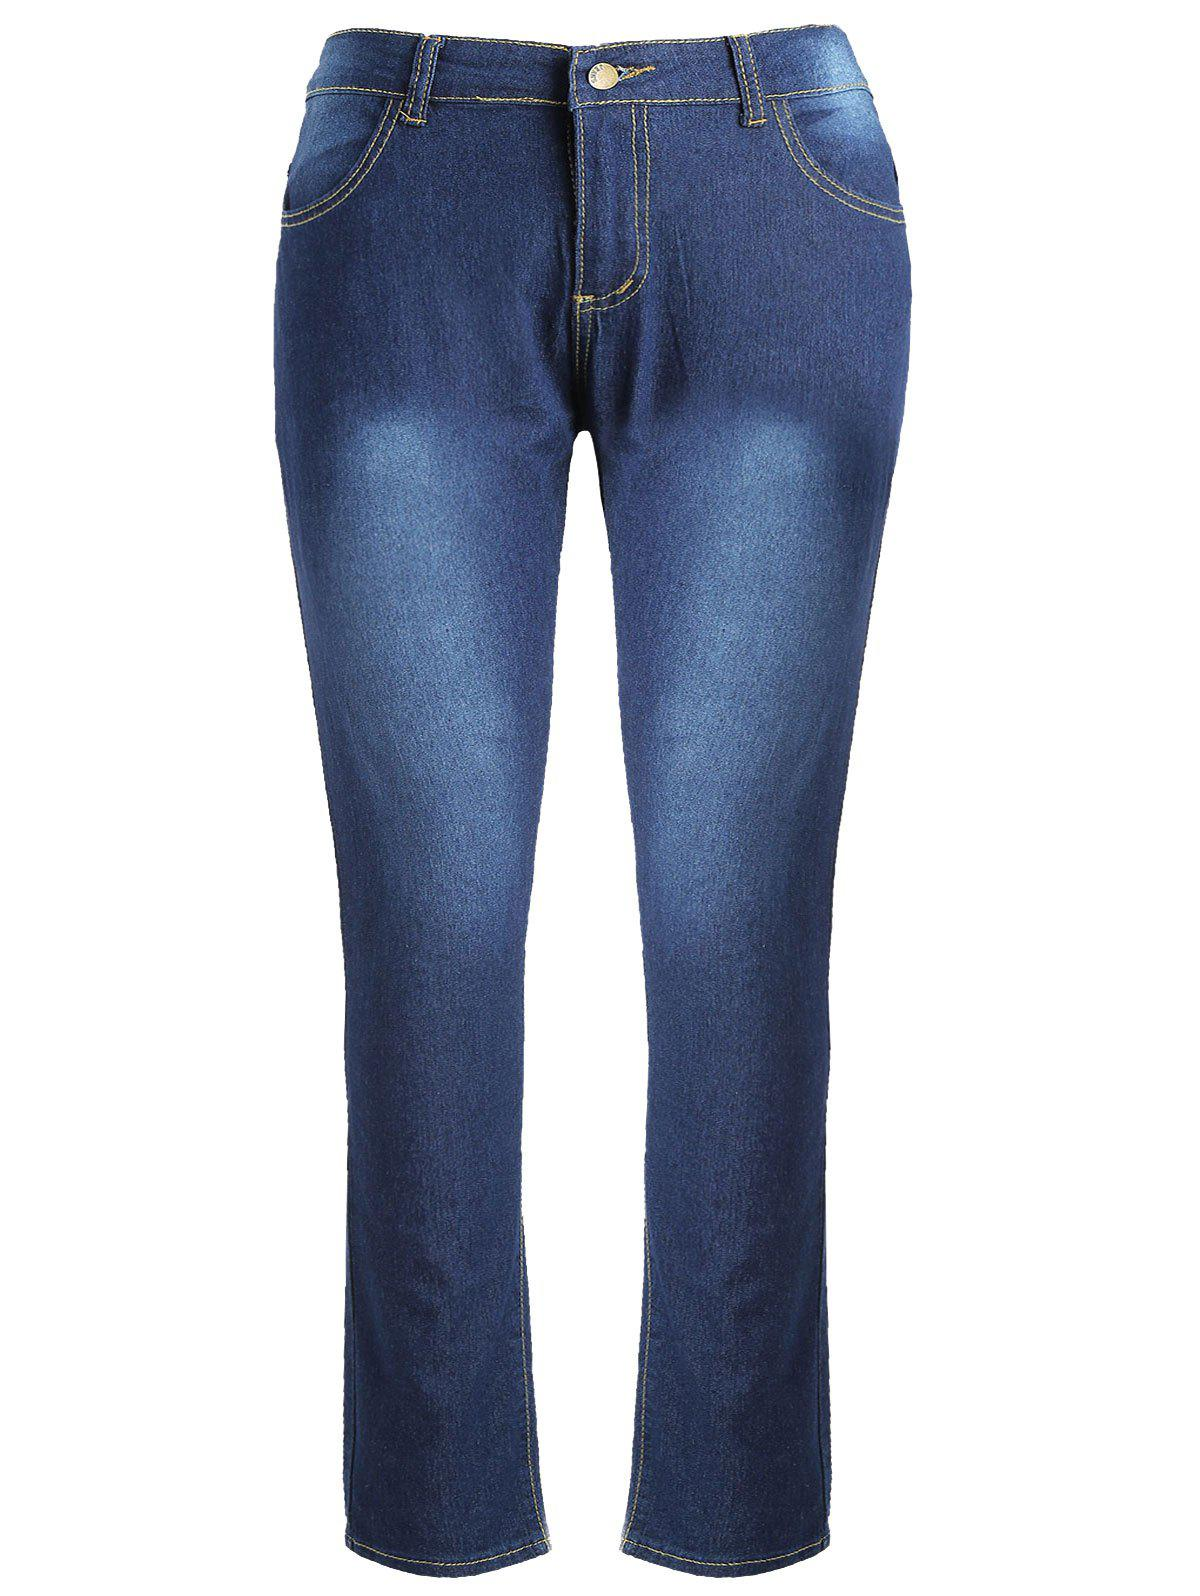 Store High Waist Plus Size Skinny Jeans